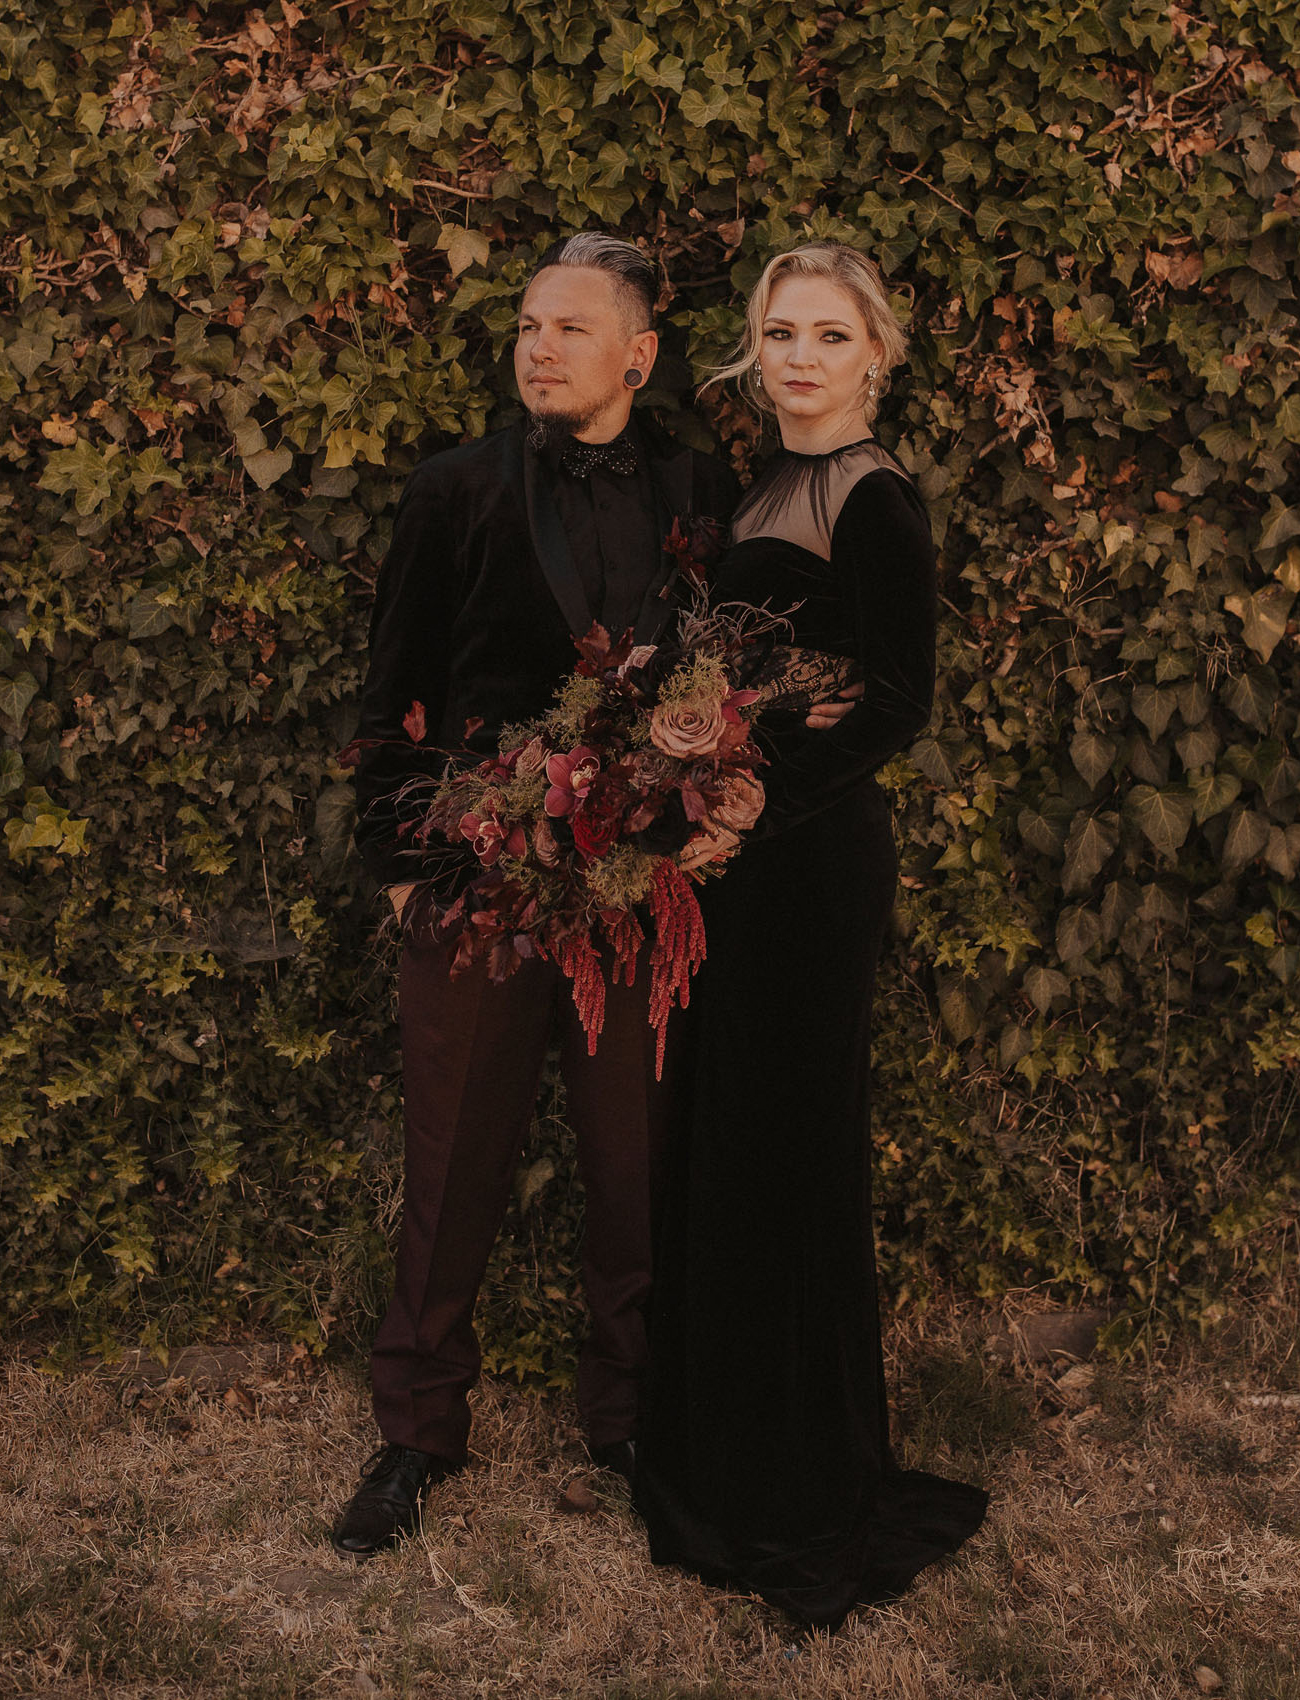 This couple went for a Gothic Halloween wedding in moody shades and with refined touches